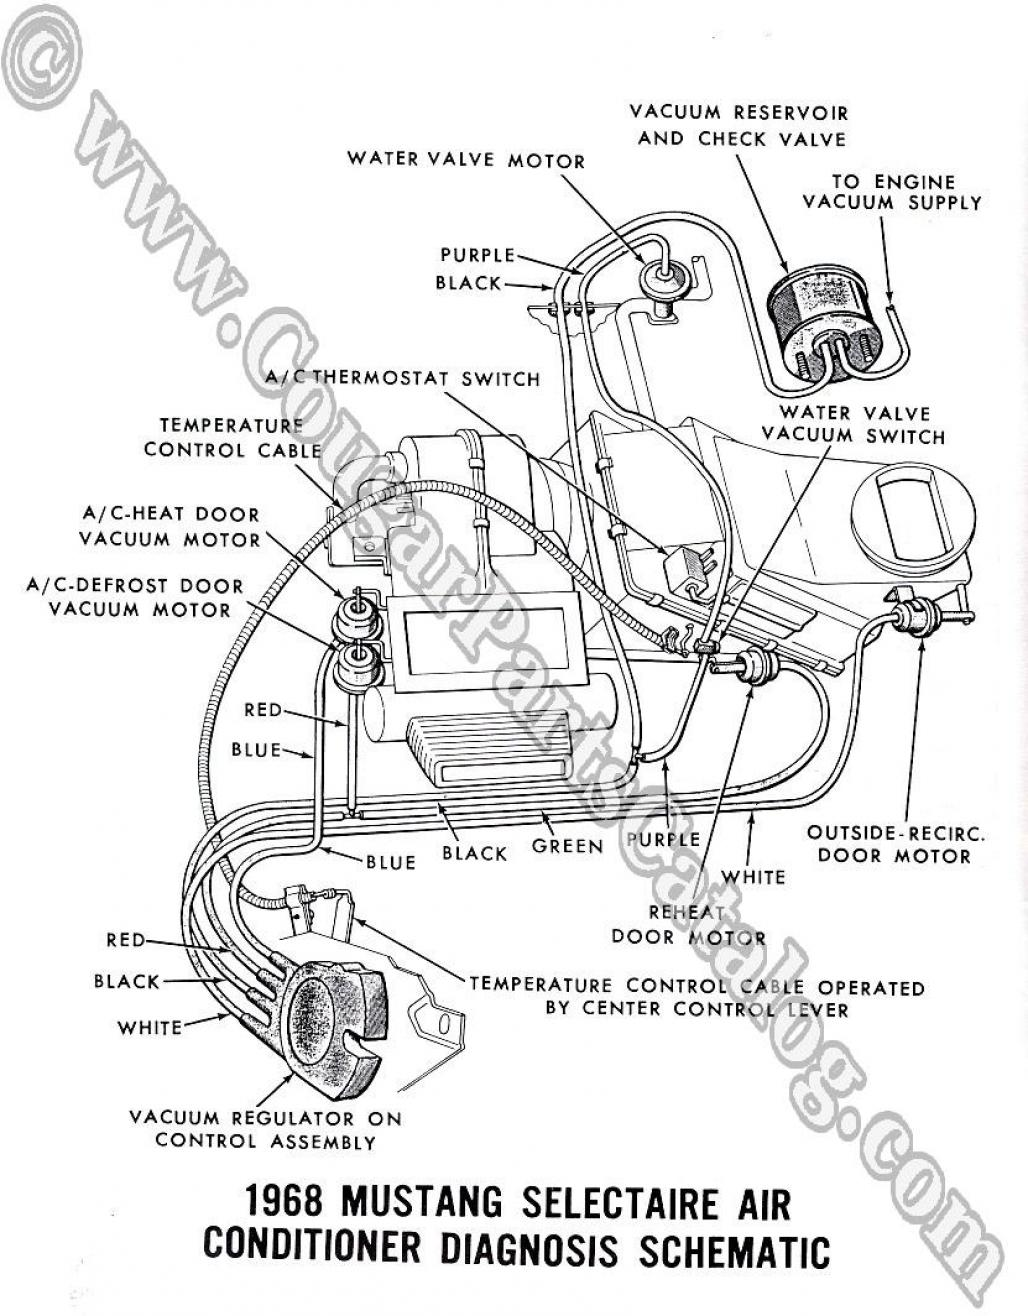 ford ford mustang ac diagram ford image wiring diagram and 1995 ford mustang have a diagram for the underhood fuse box besides mustang the location of